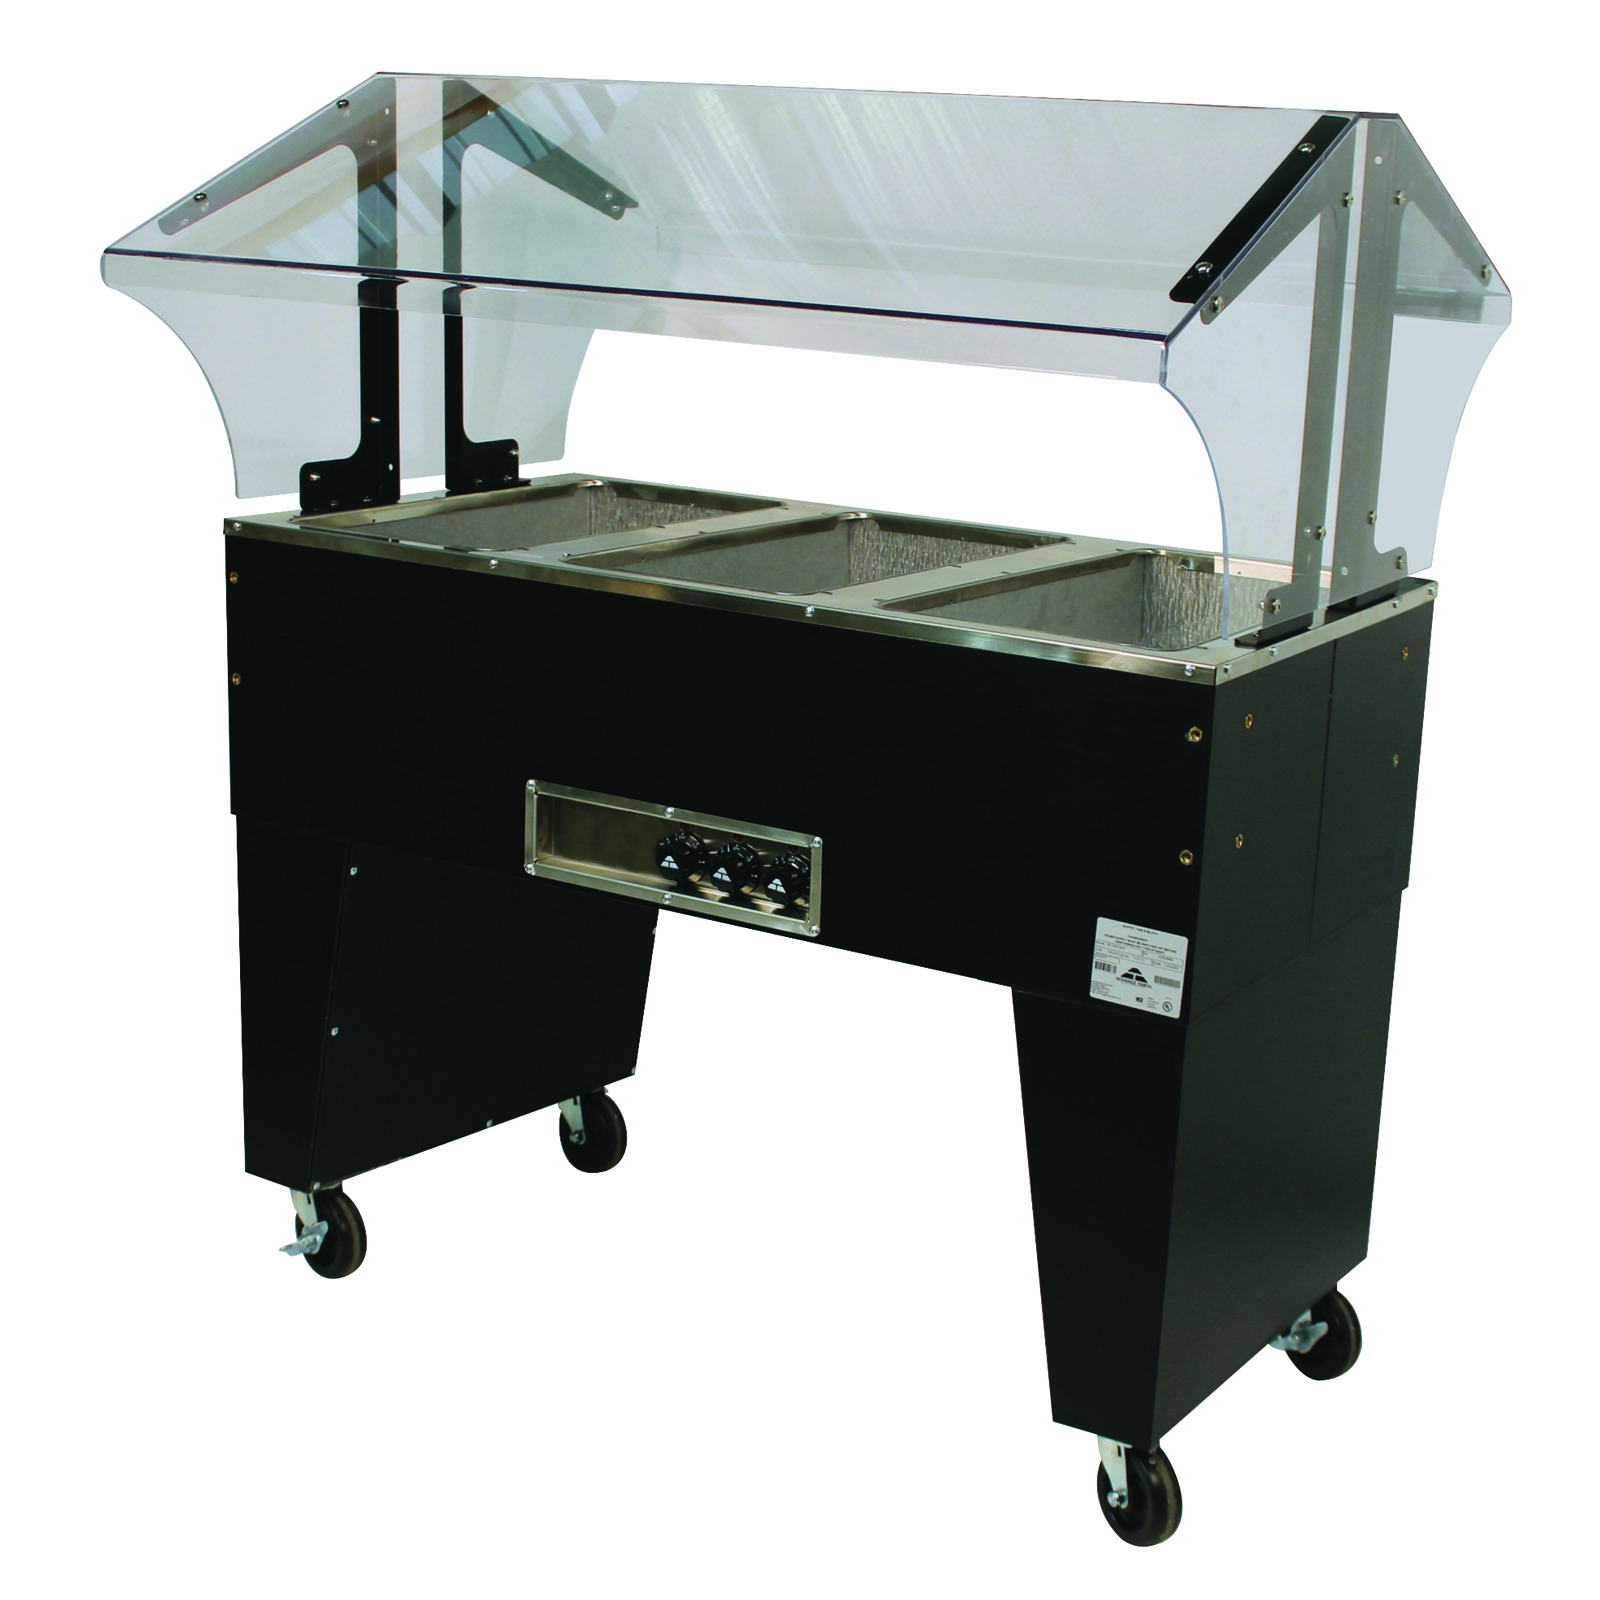 Advance Tabco B3-120-B serving counter, hot food, electric